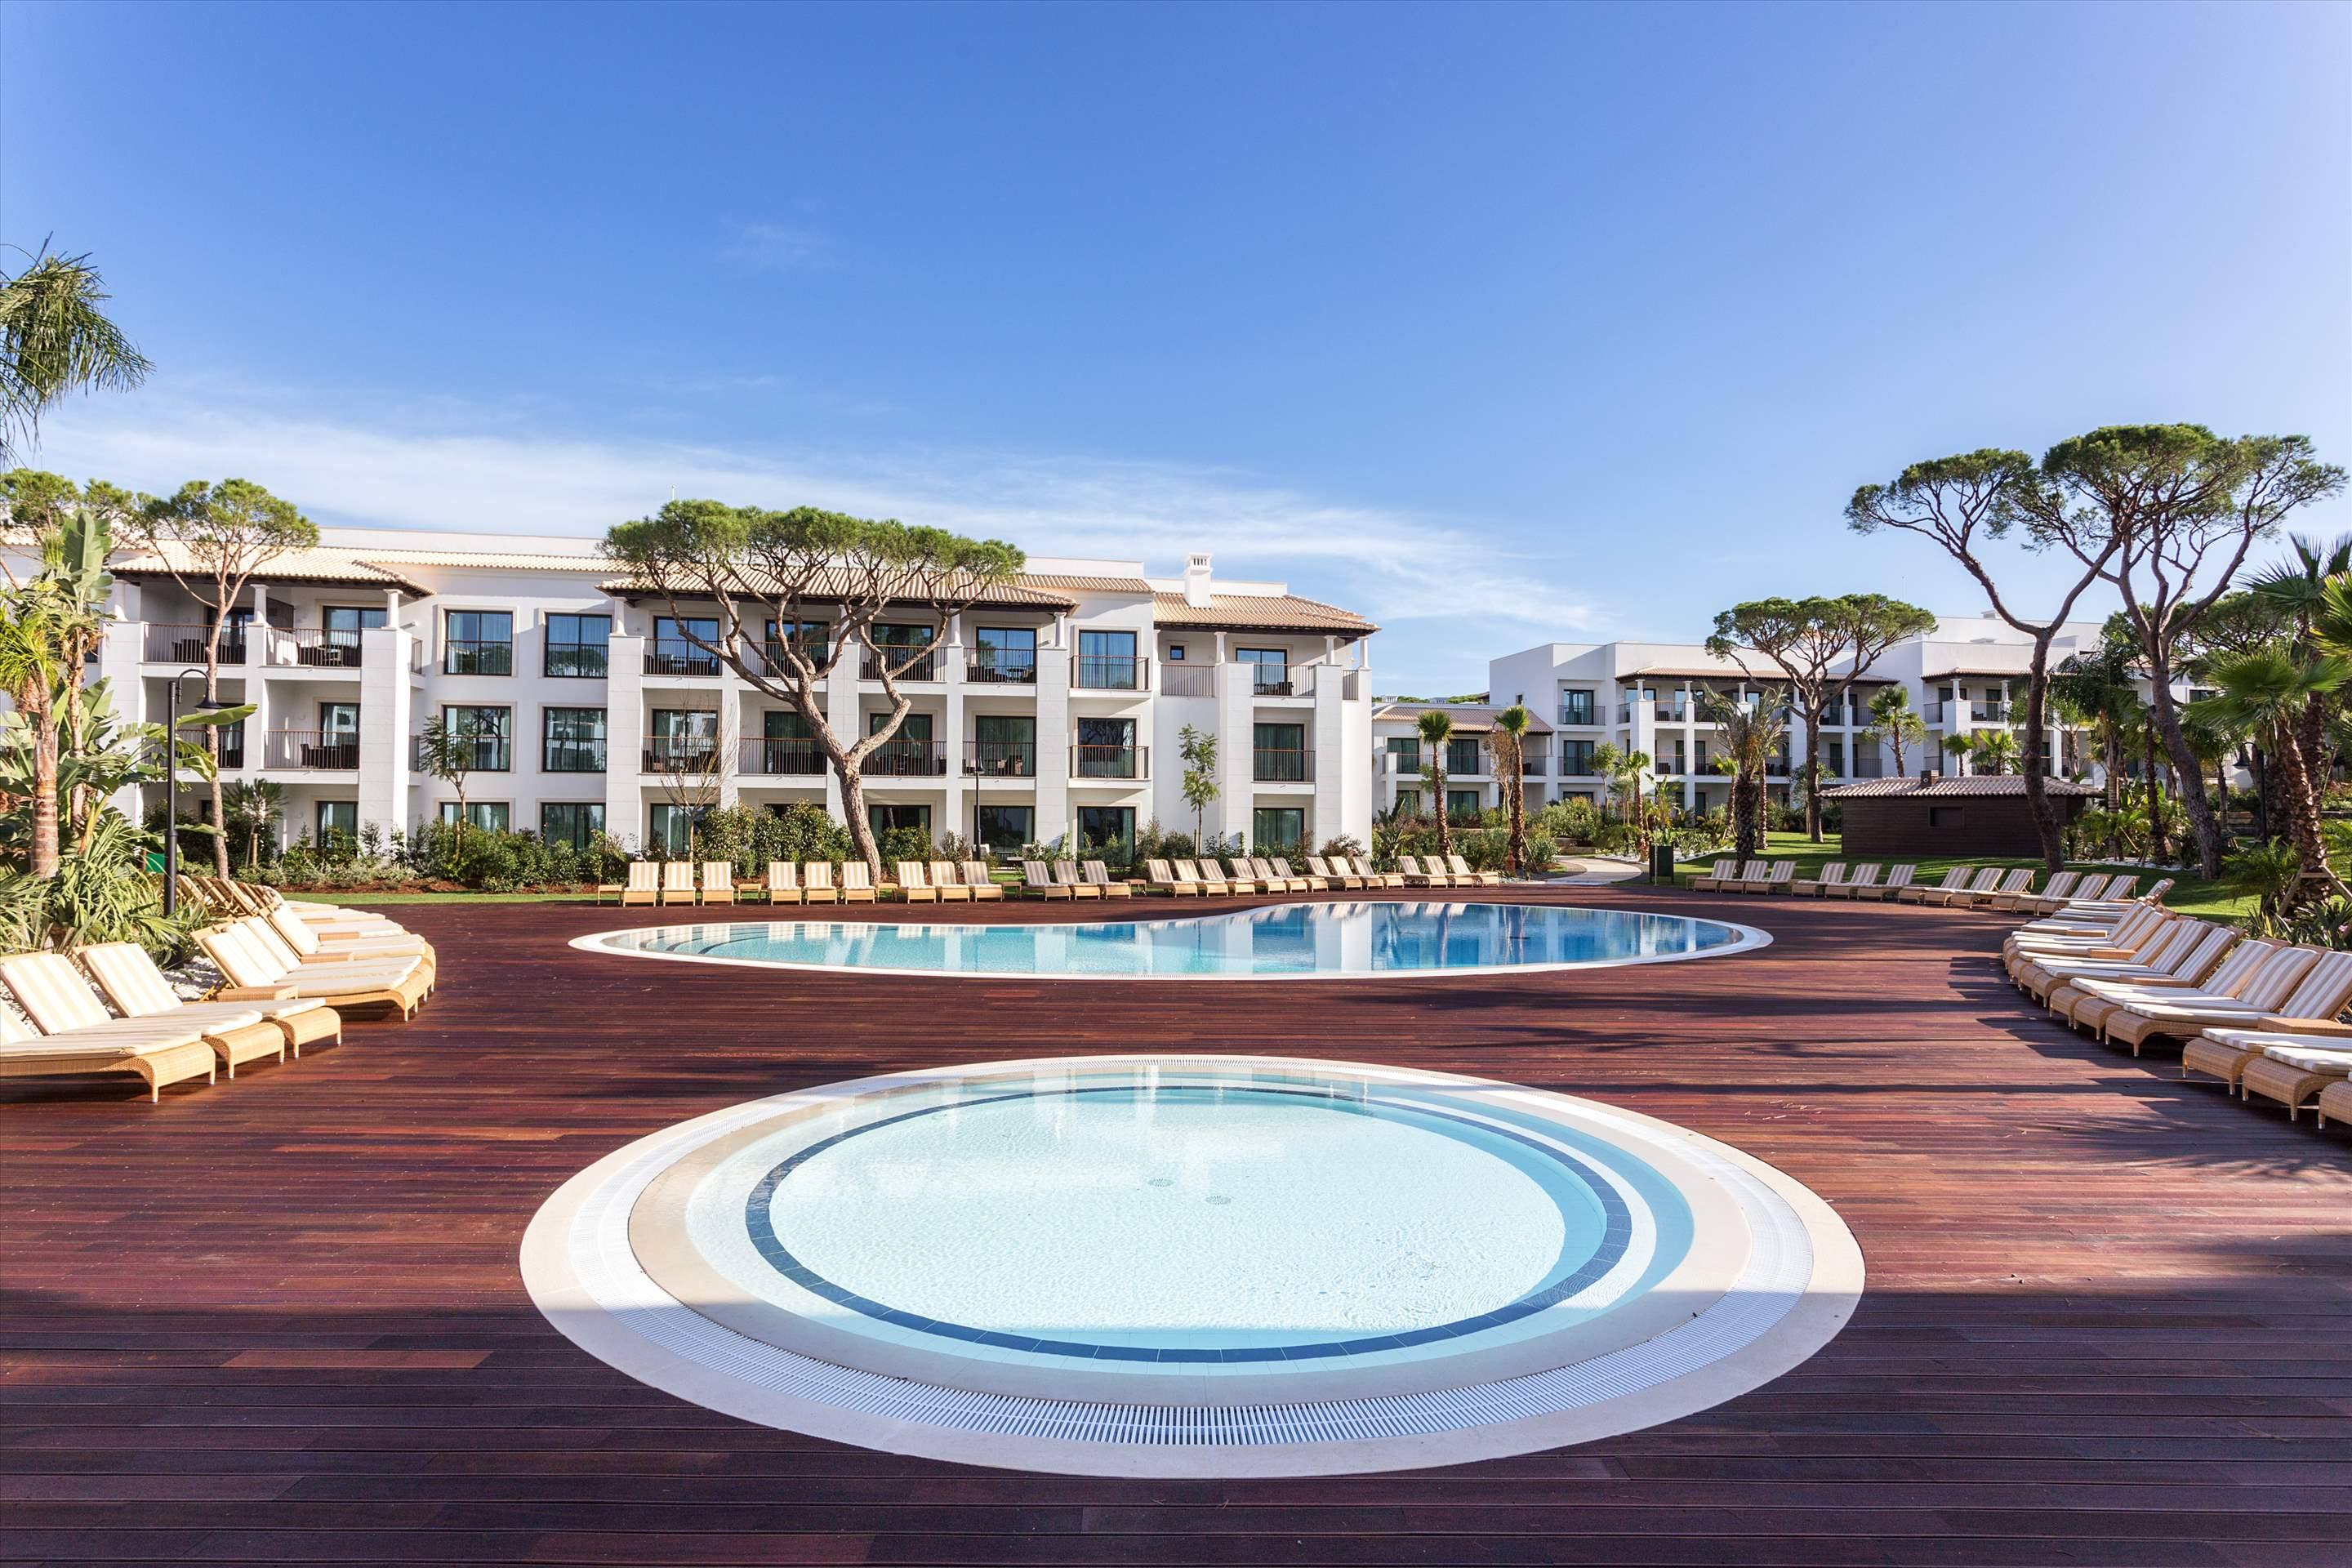 Pine Cliffs Gardens, Two Bedroom Suite, S/C Basis, 2 bedroom apartment in Pine Cliffs Resort, Algarve Photo #7